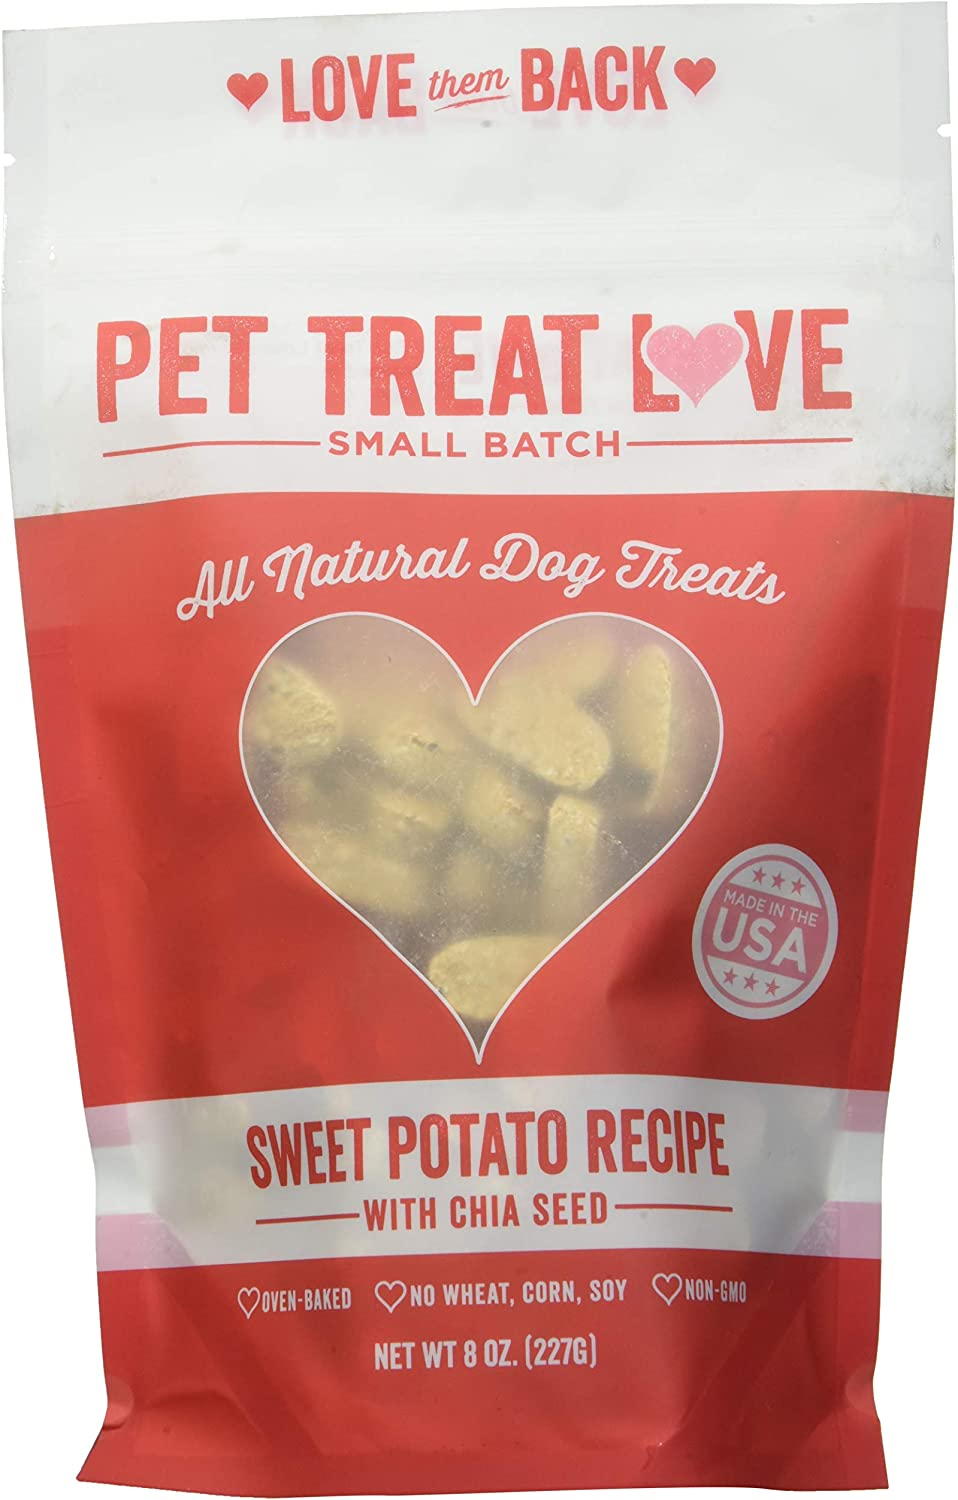 Amazon.com: Pet Treat Love PTL-SP dulce patata arándano para ...